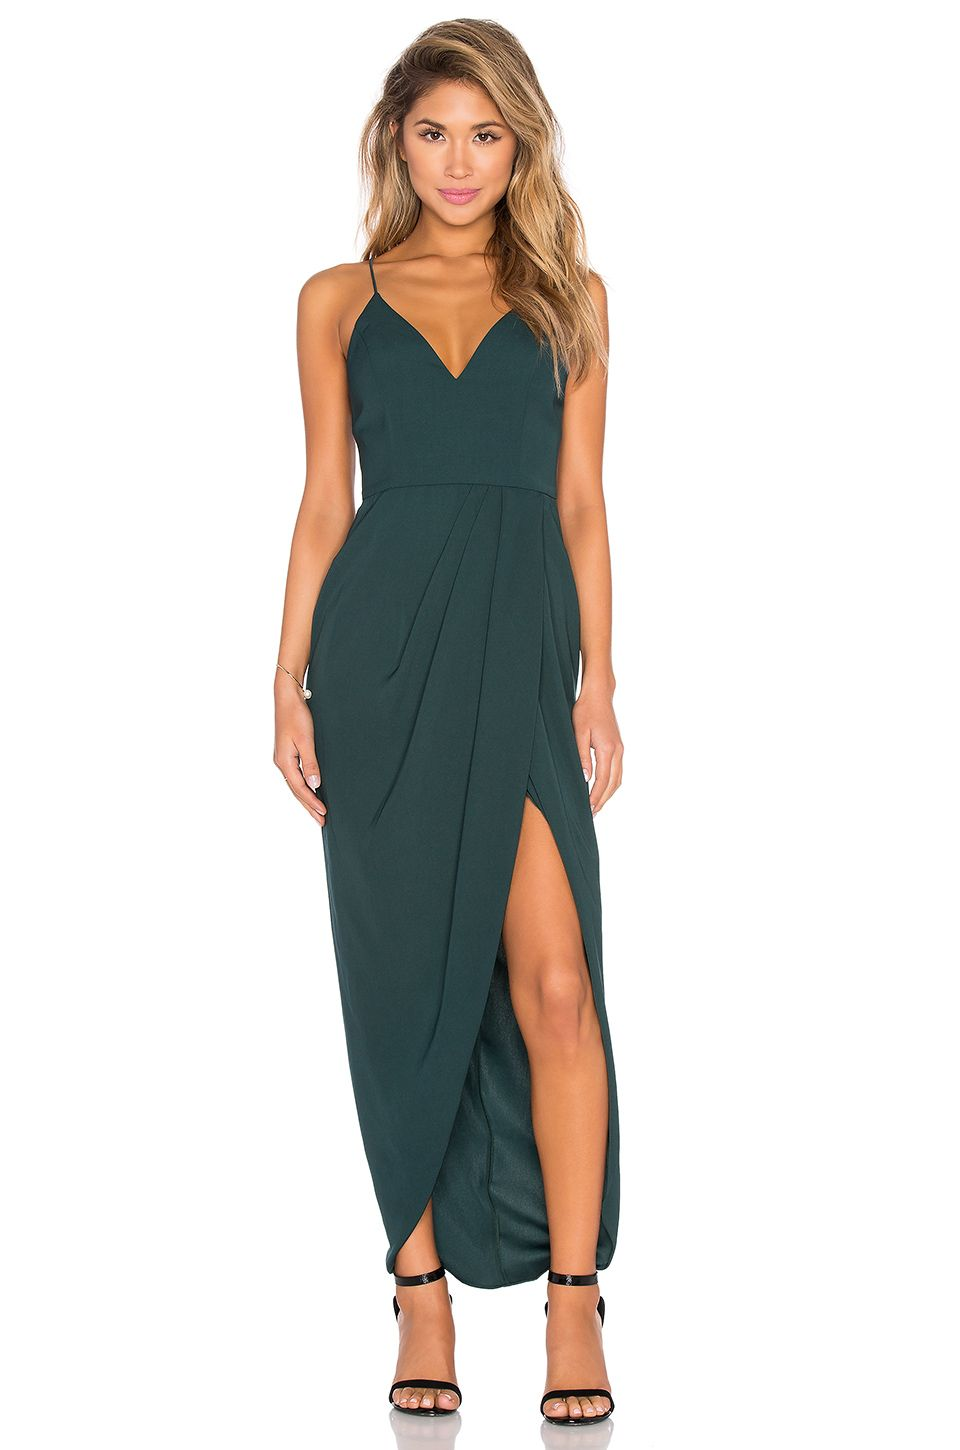 Shona Joy Stellar Drape Maxi Dress In Seaweed Hair Styles Wedding Guestcasual